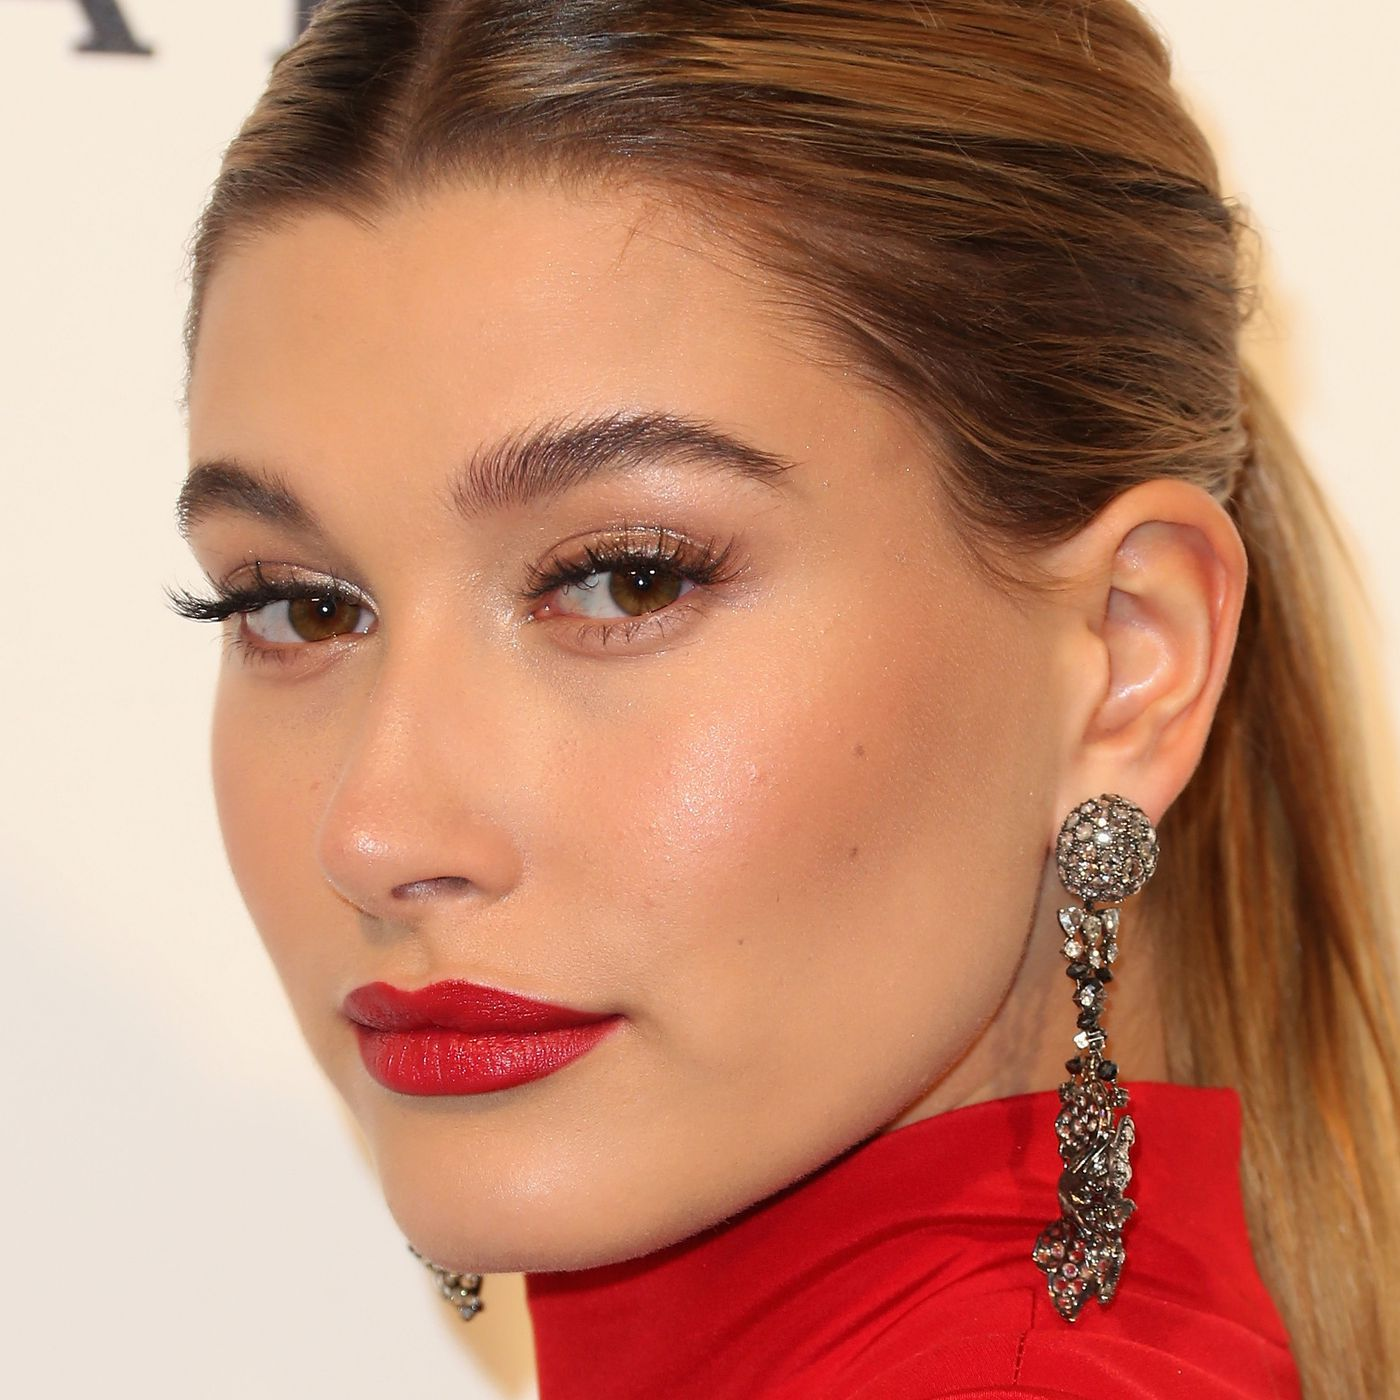 A Celeb Makeup Artist Reveals Why Hailey Baldwin S Face Drives Her Nuts Racked La